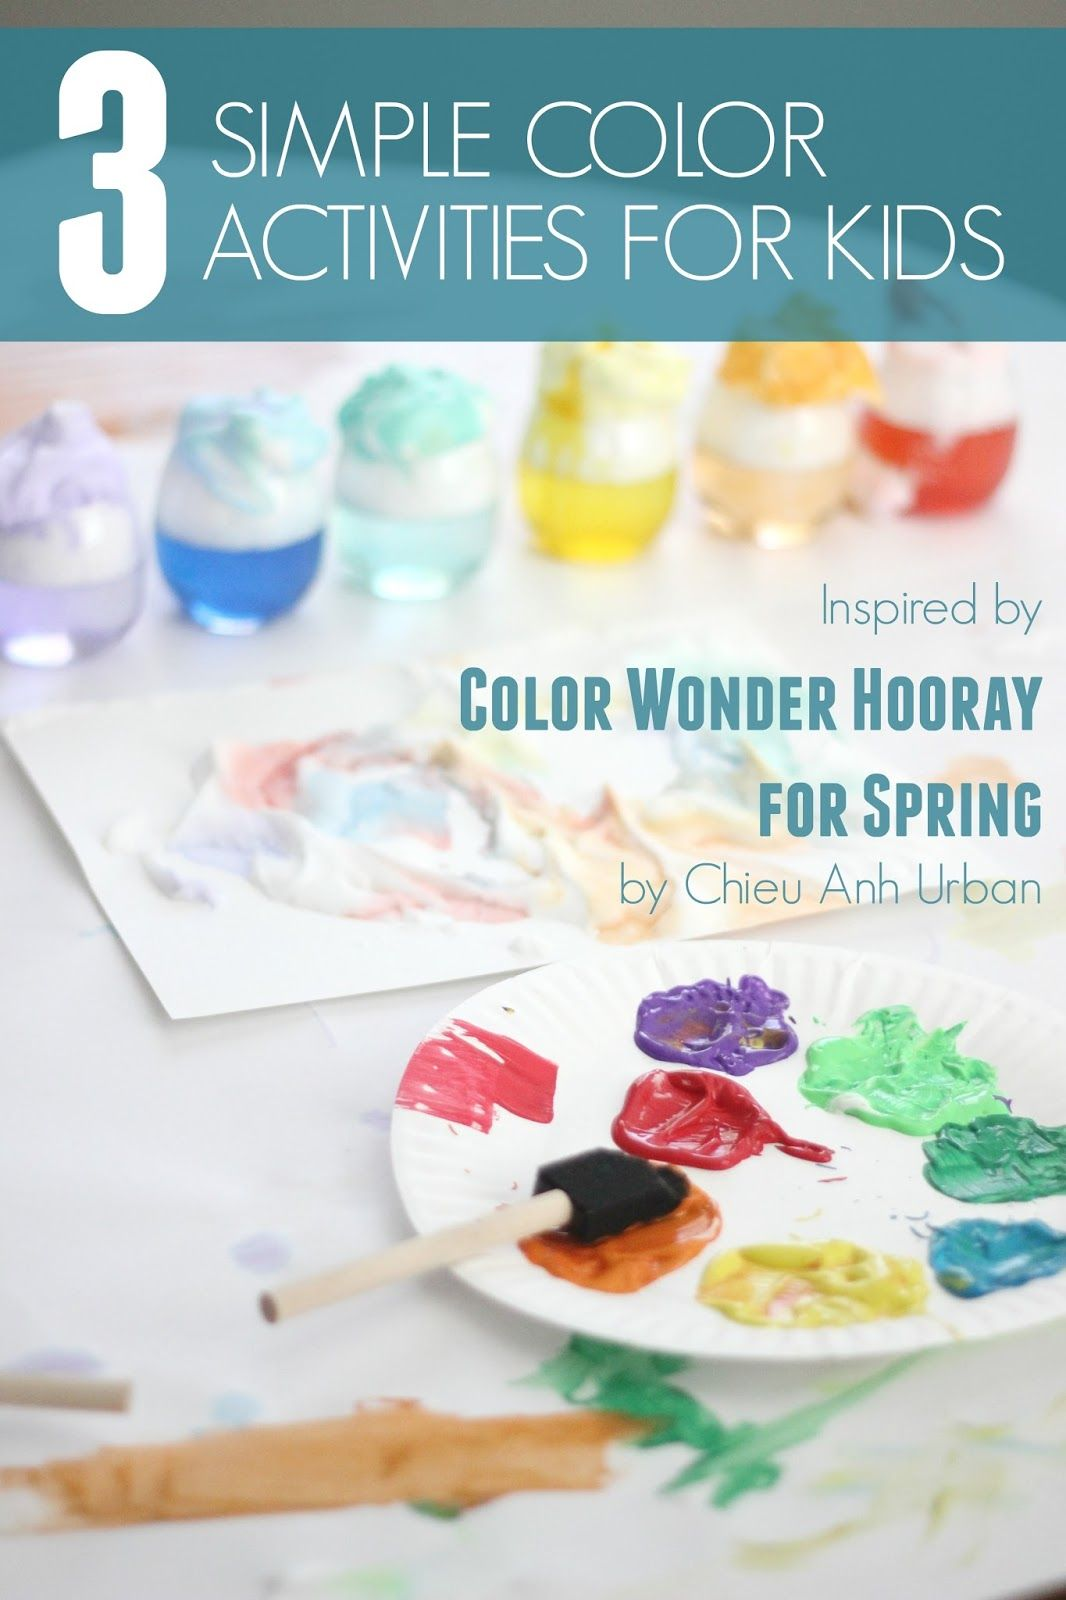 This post features some colorful activities inspired by Color Wonder: Hooray for Spring! by Chieu Anh Urban. #sponsored